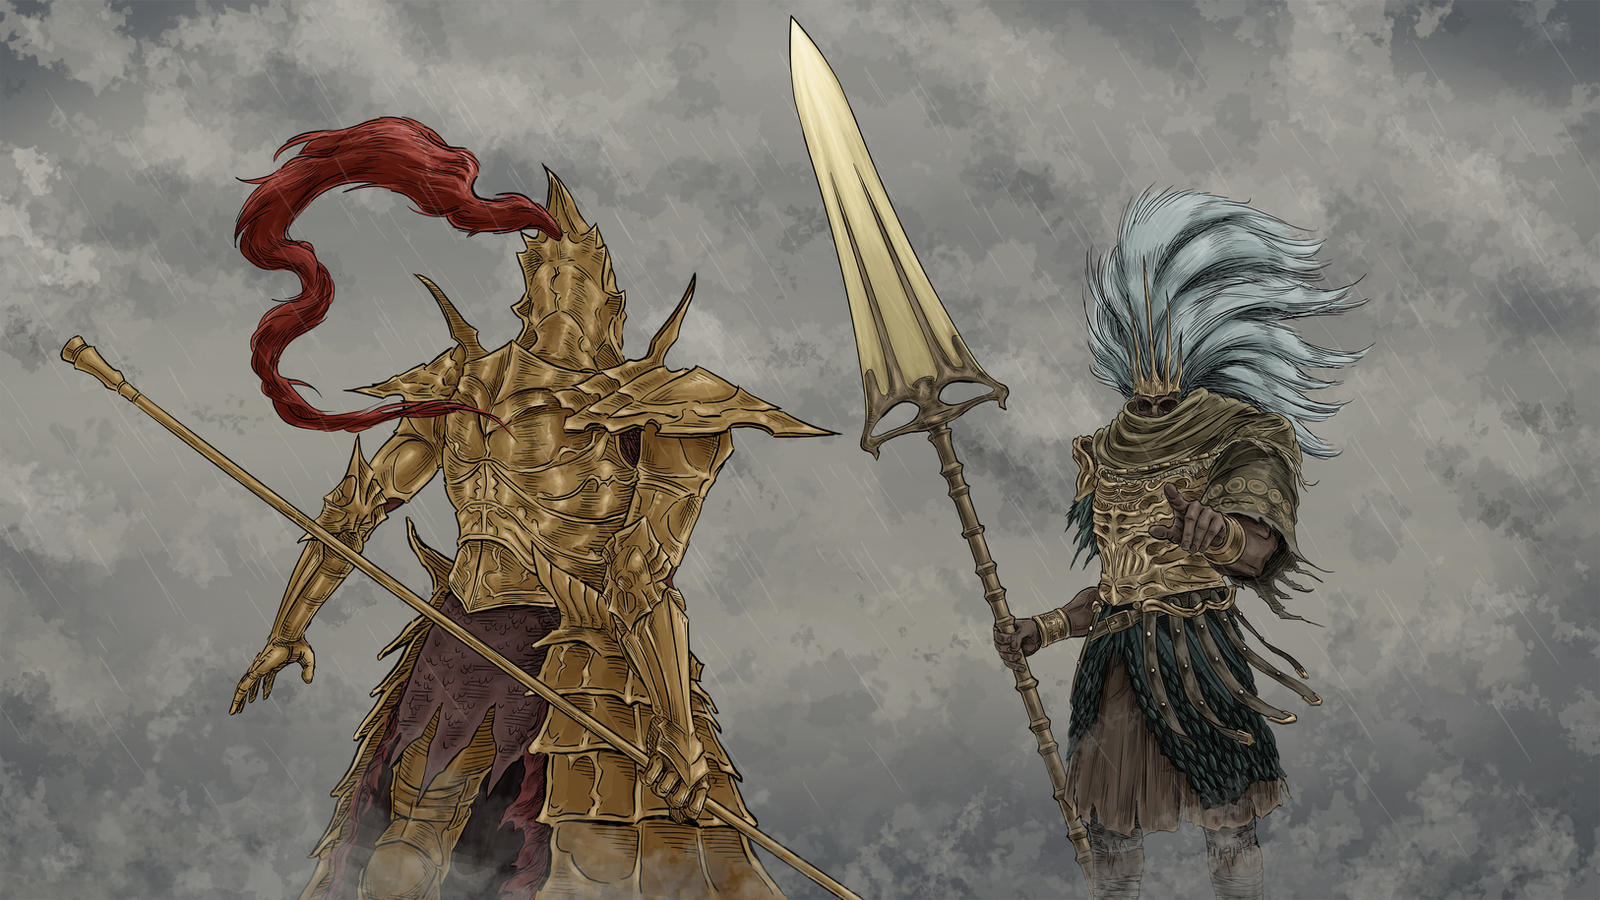 Dark Souls 3 Ornstein And The Nameless King By Menaslg On